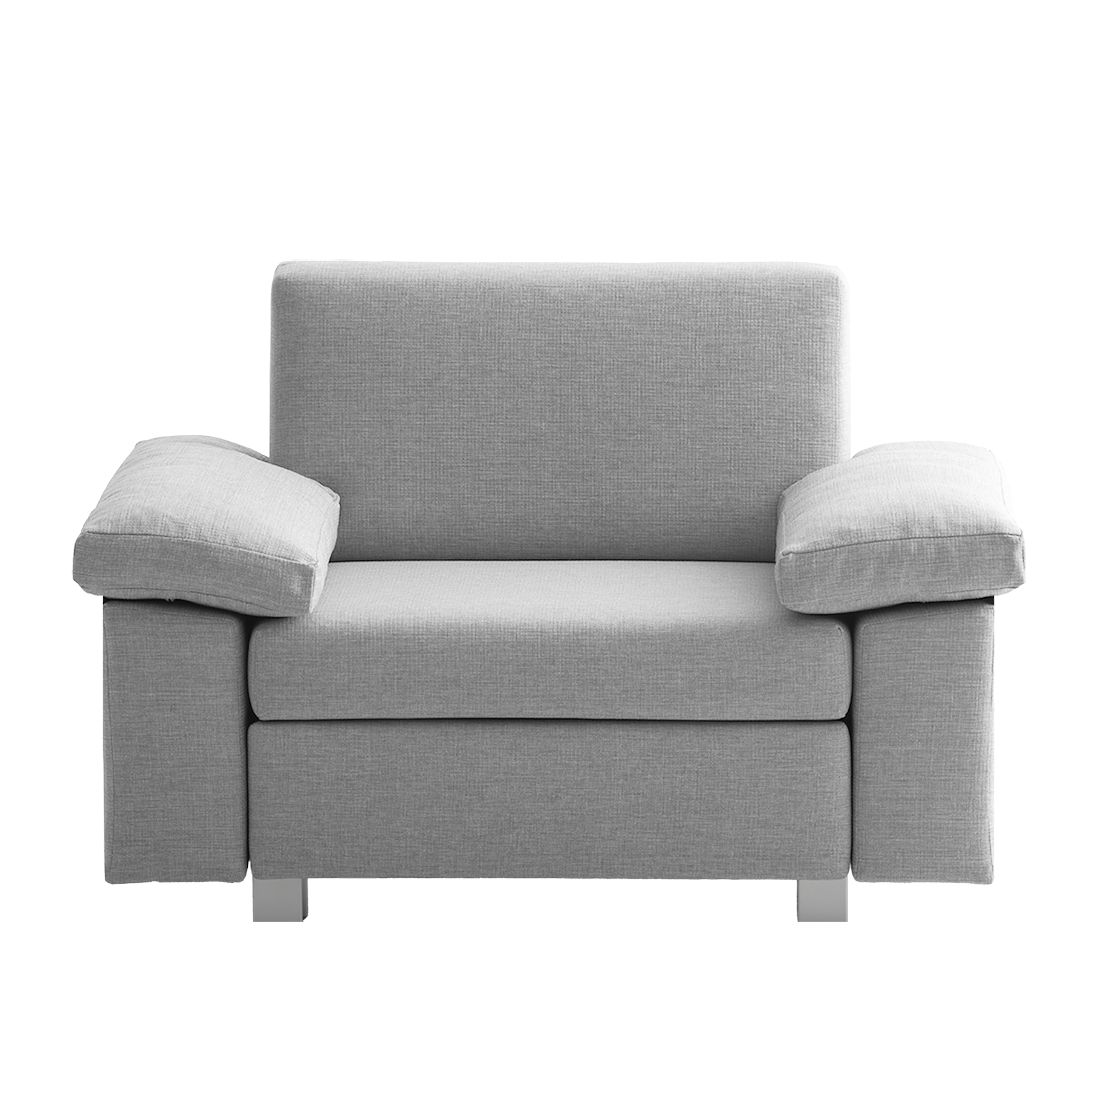 Fauteuil convertible Plaza - Tissu - Gris clair - Types d'accoudoir rabattable, chillout by Franz Fe